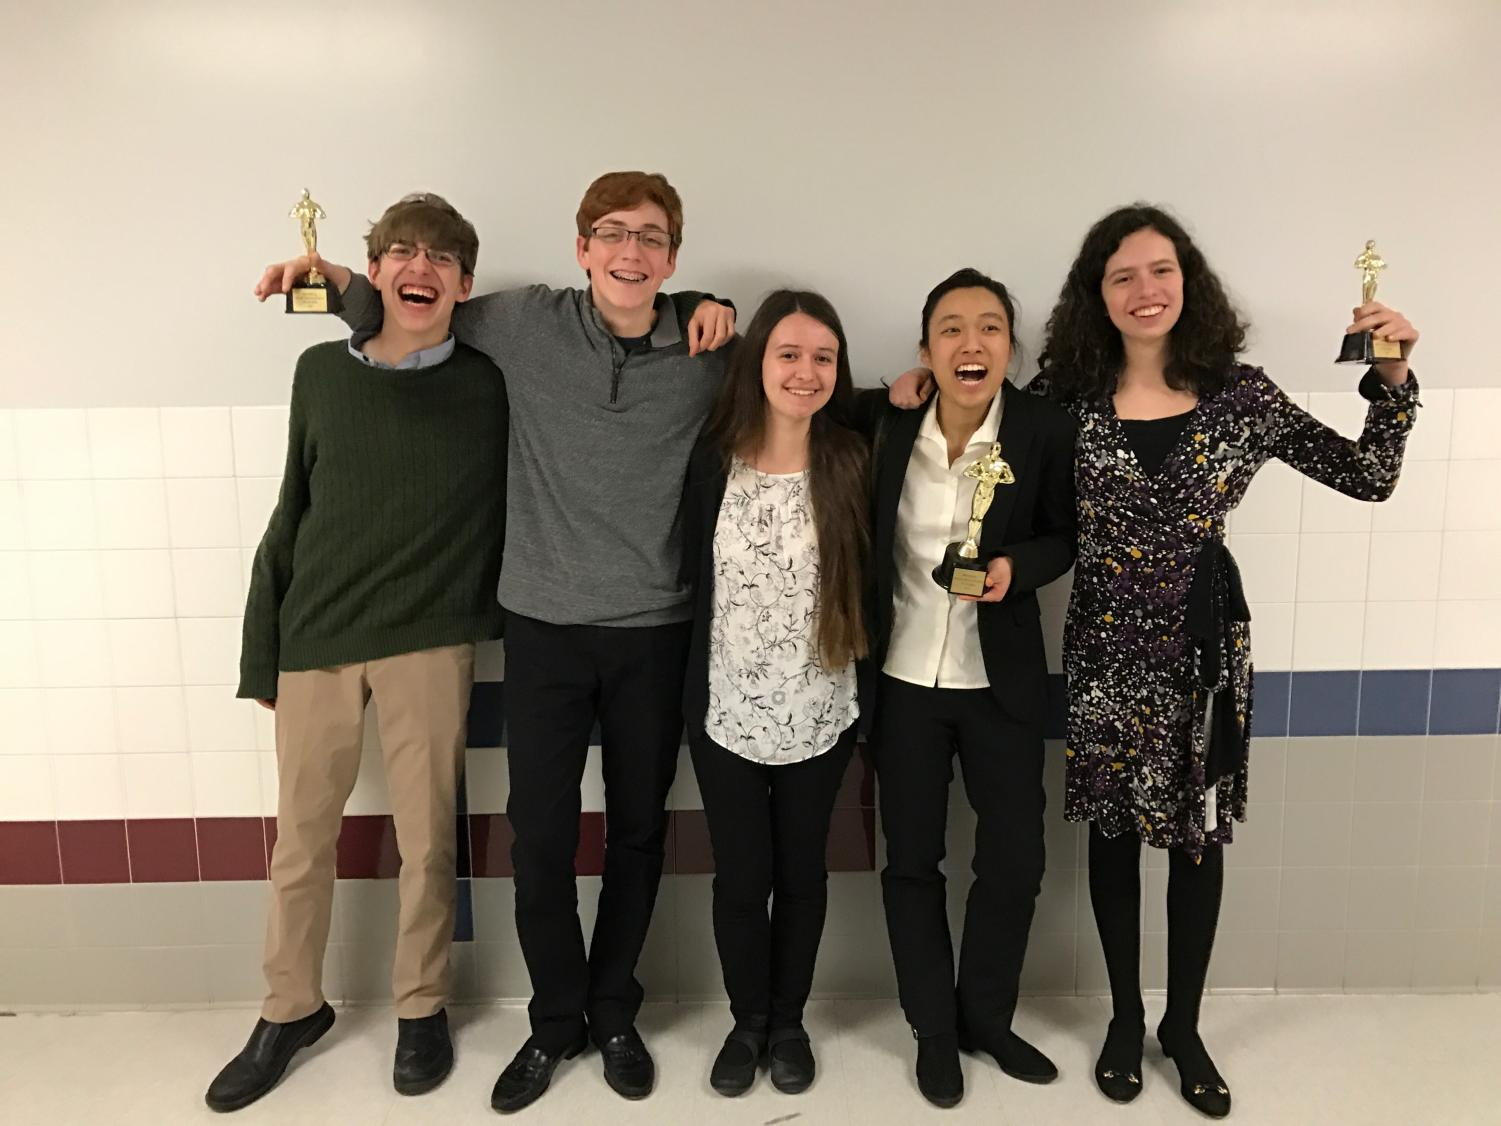 The Speech and Debate club flaunts their awards after sucessfully competing in the March Merryness Tournament, the last chance to qualify for the state tournament.